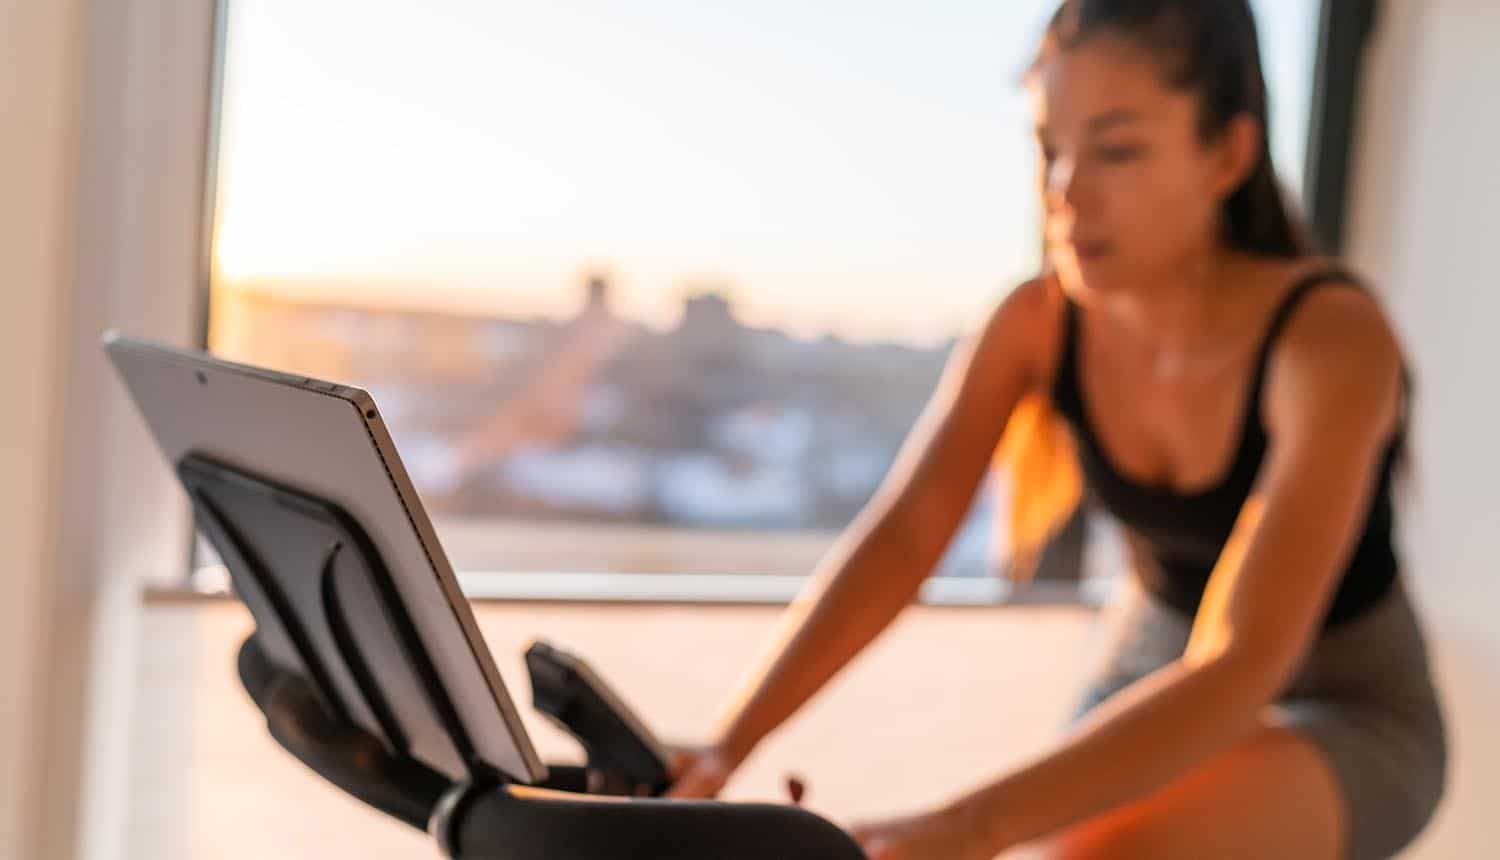 Woman exercising on smart stationary bike at home showing need for API security